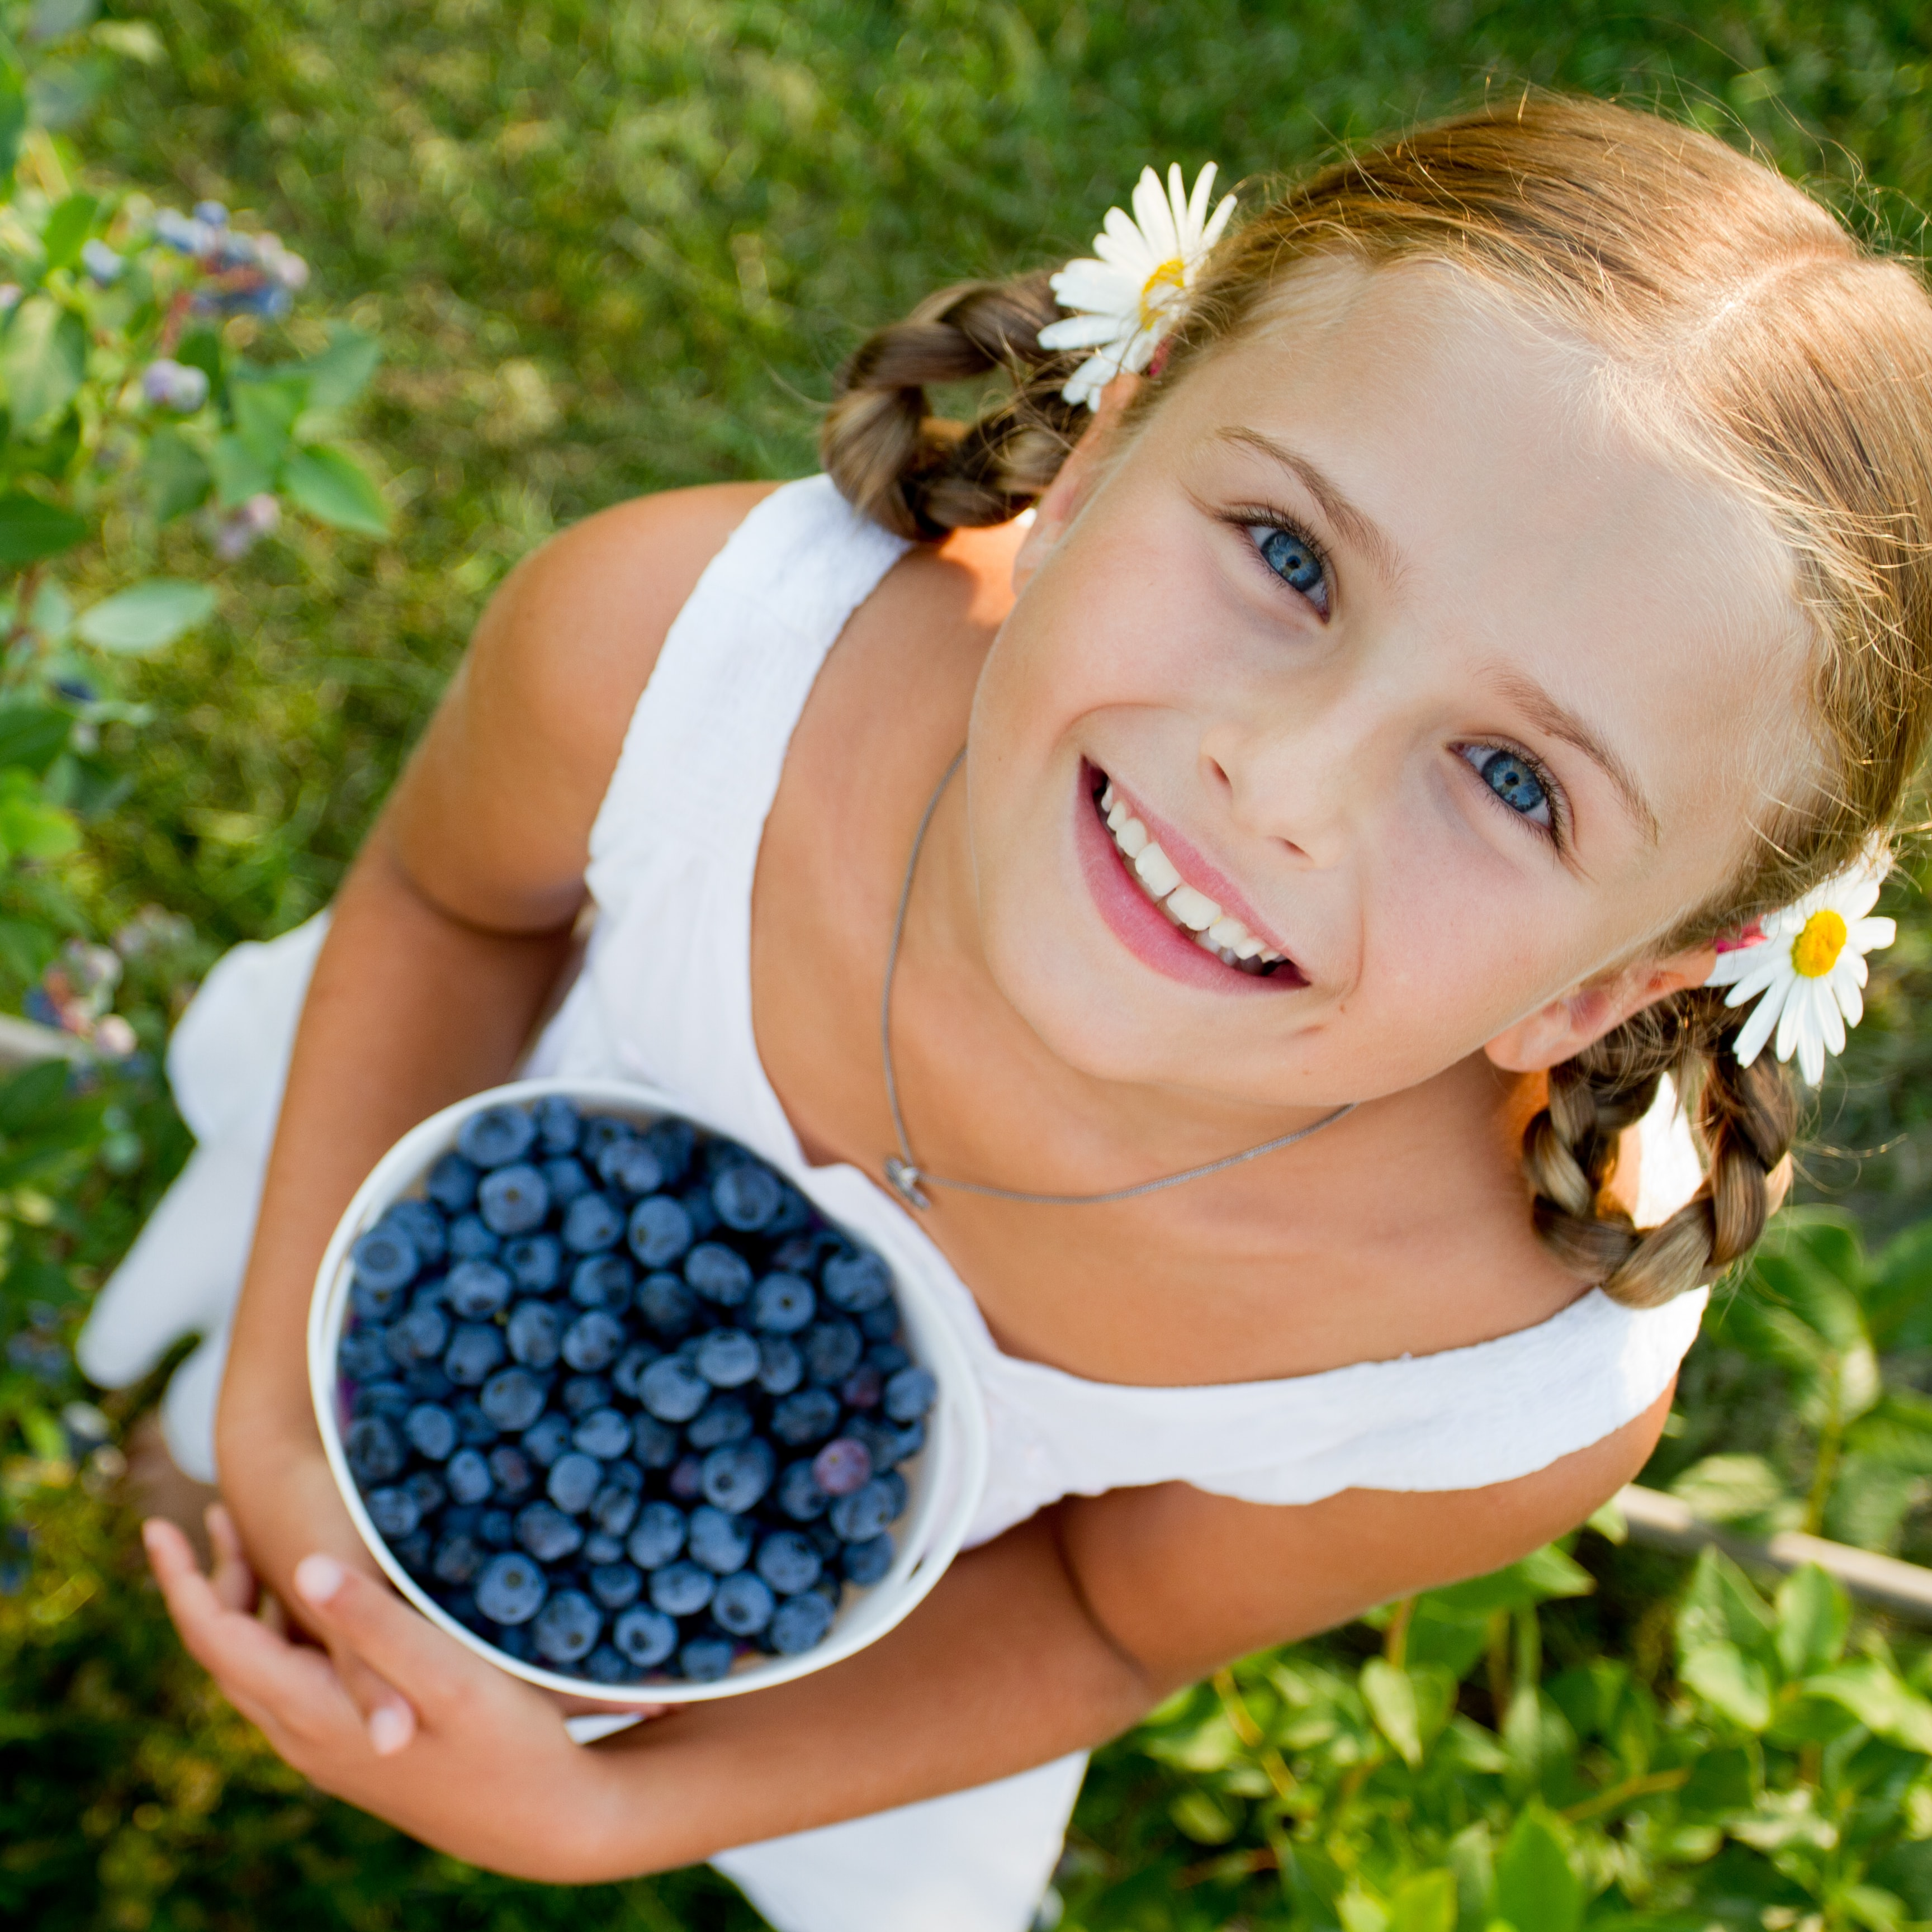 u-pick blueberries fresh off the bush can be picked at the blueberryhill fields during an original orlando tours visit